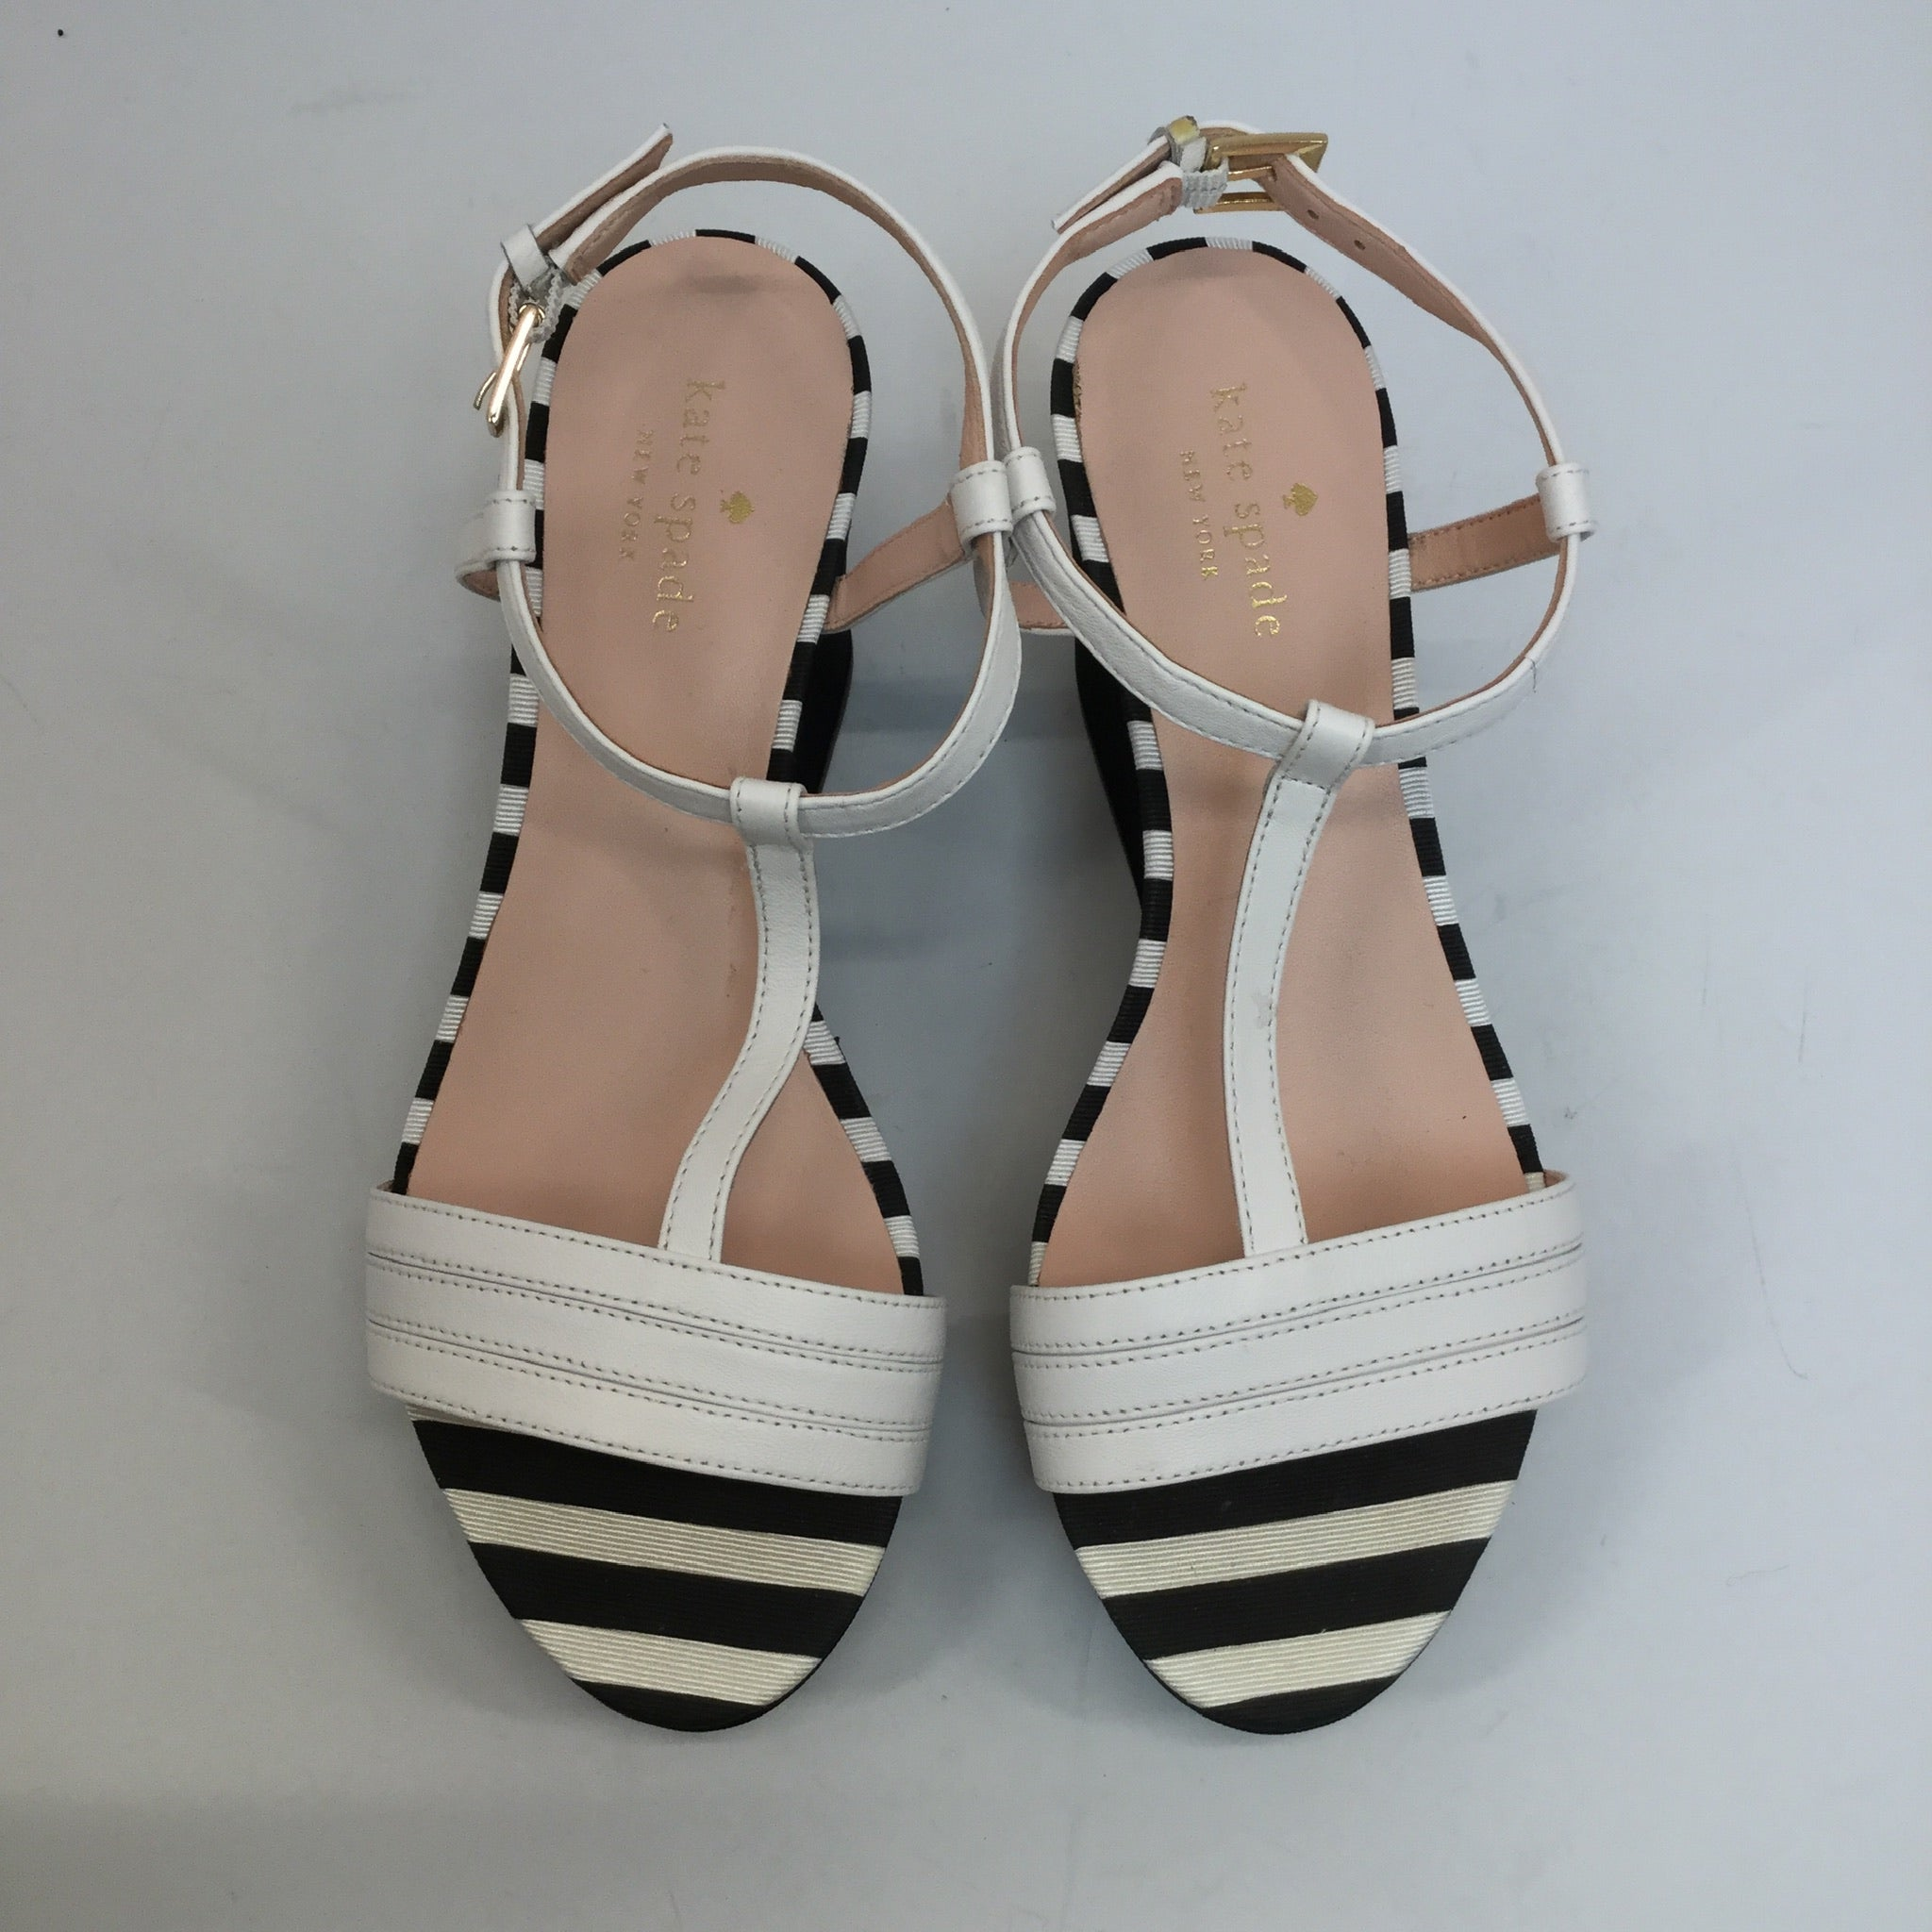 Kate Spade Tallin Wedge Sandals - size 7.5